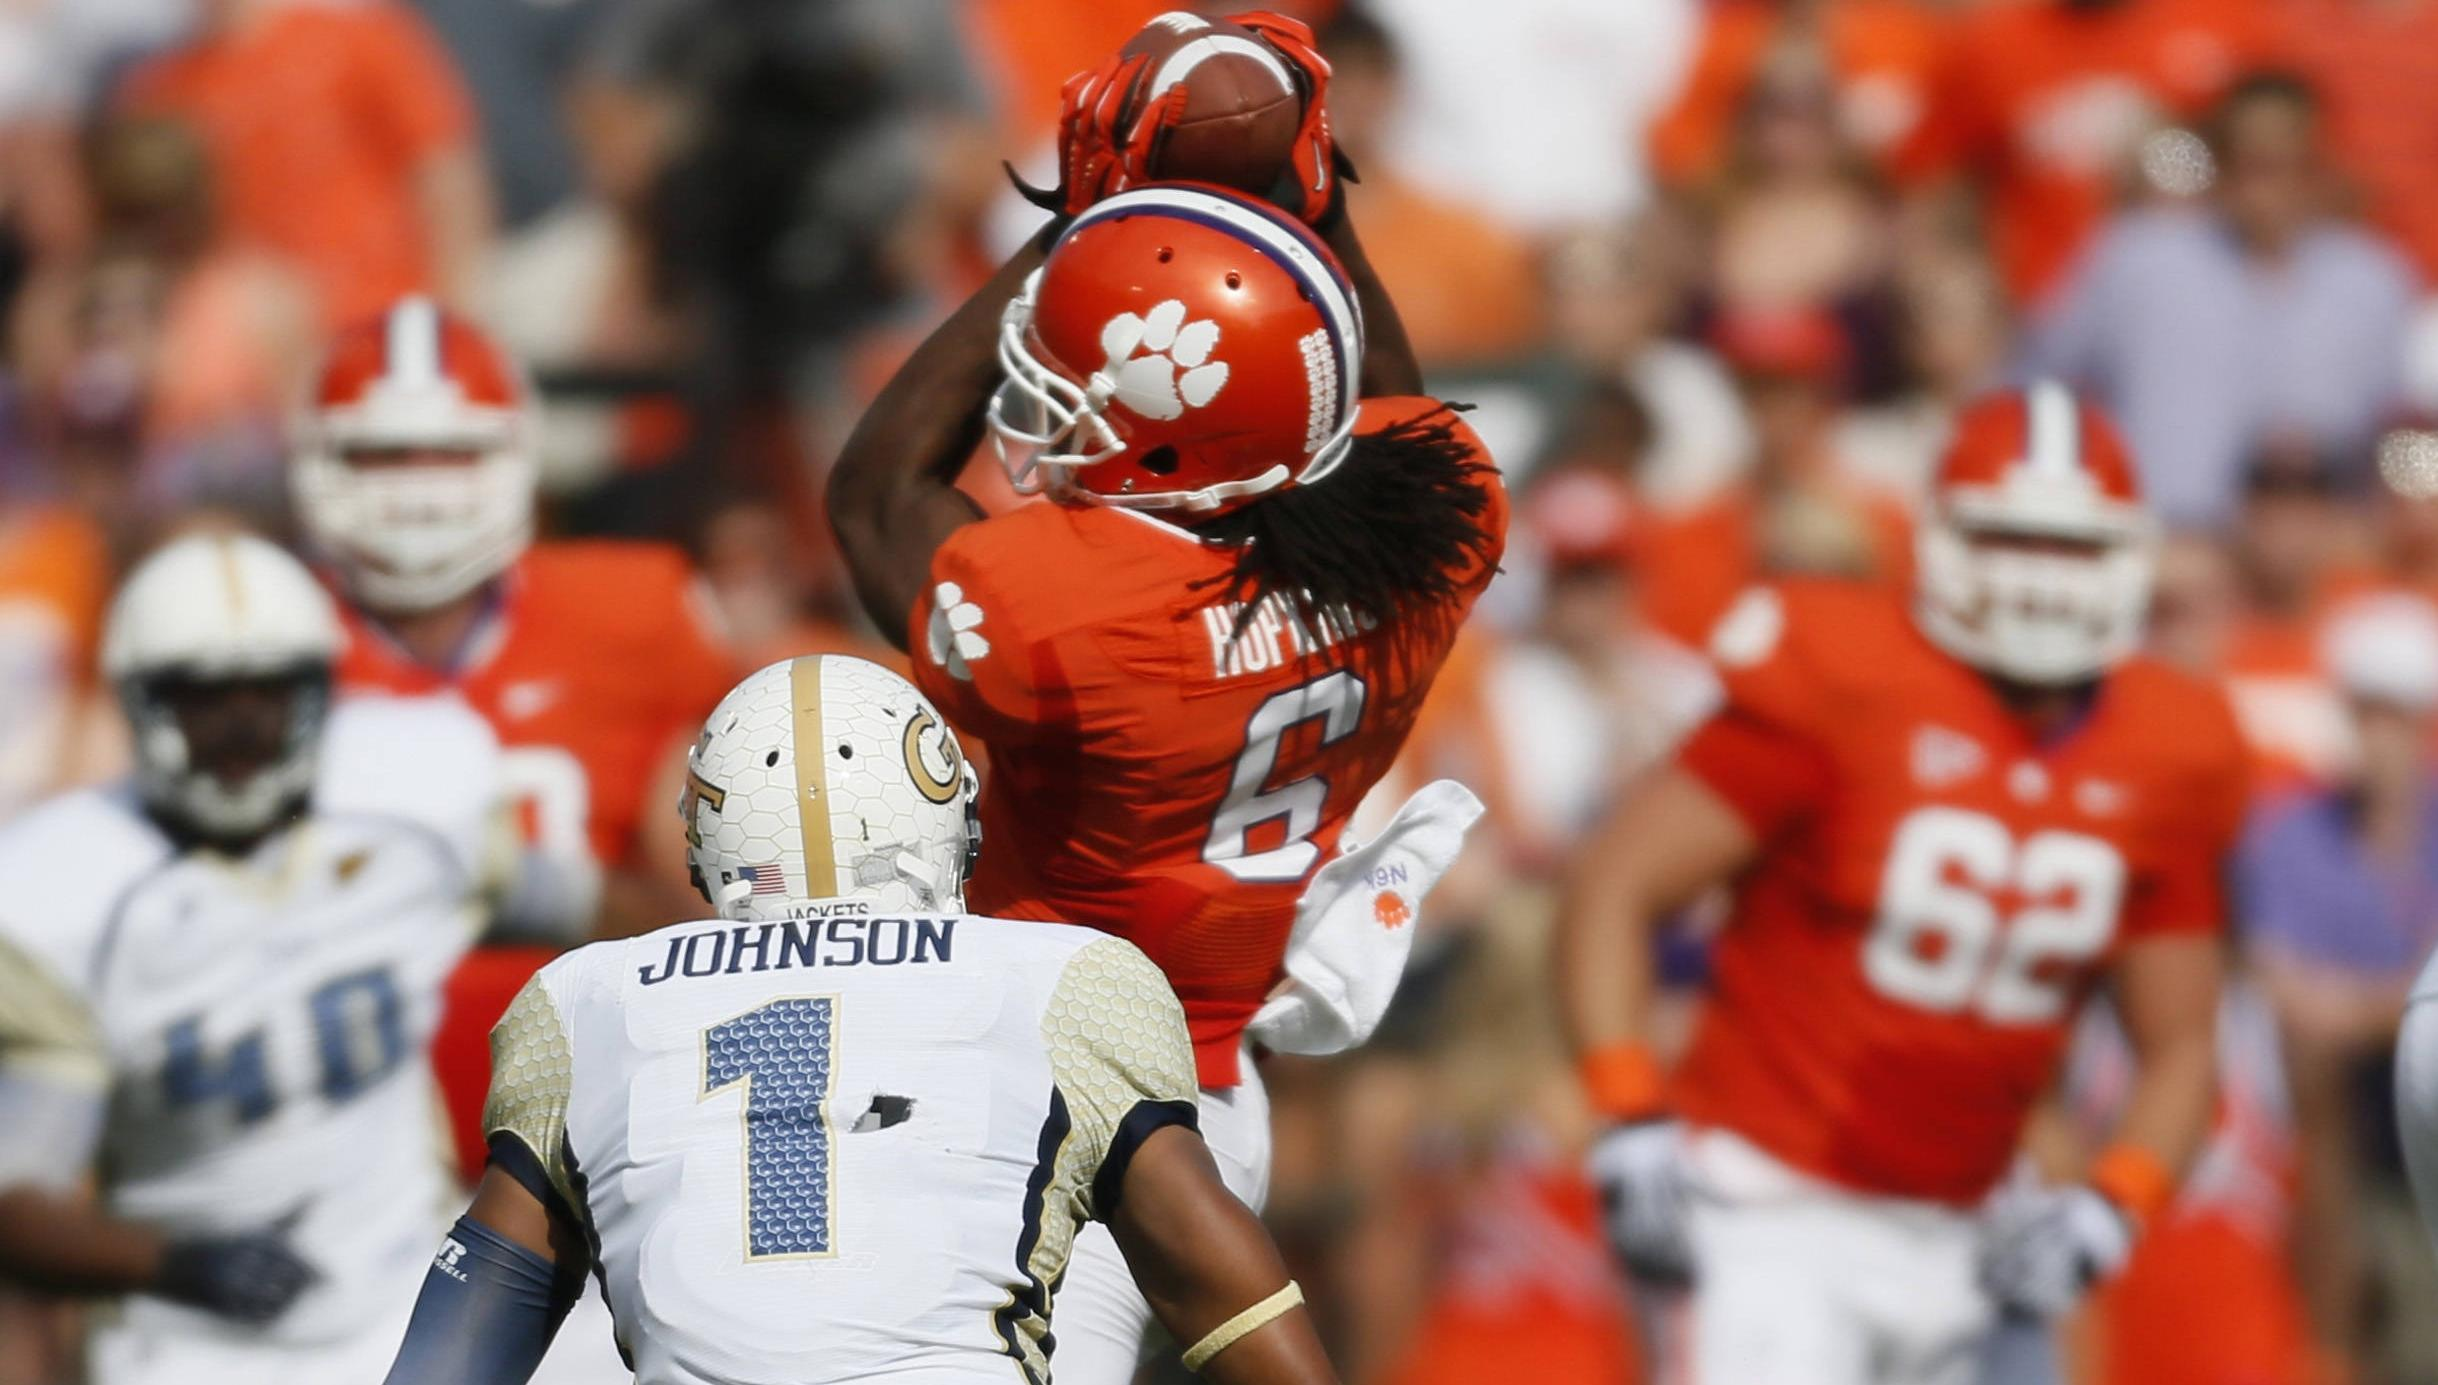 Clemson vs. Virginia Tech Game to Kick Off at Noon on October 20